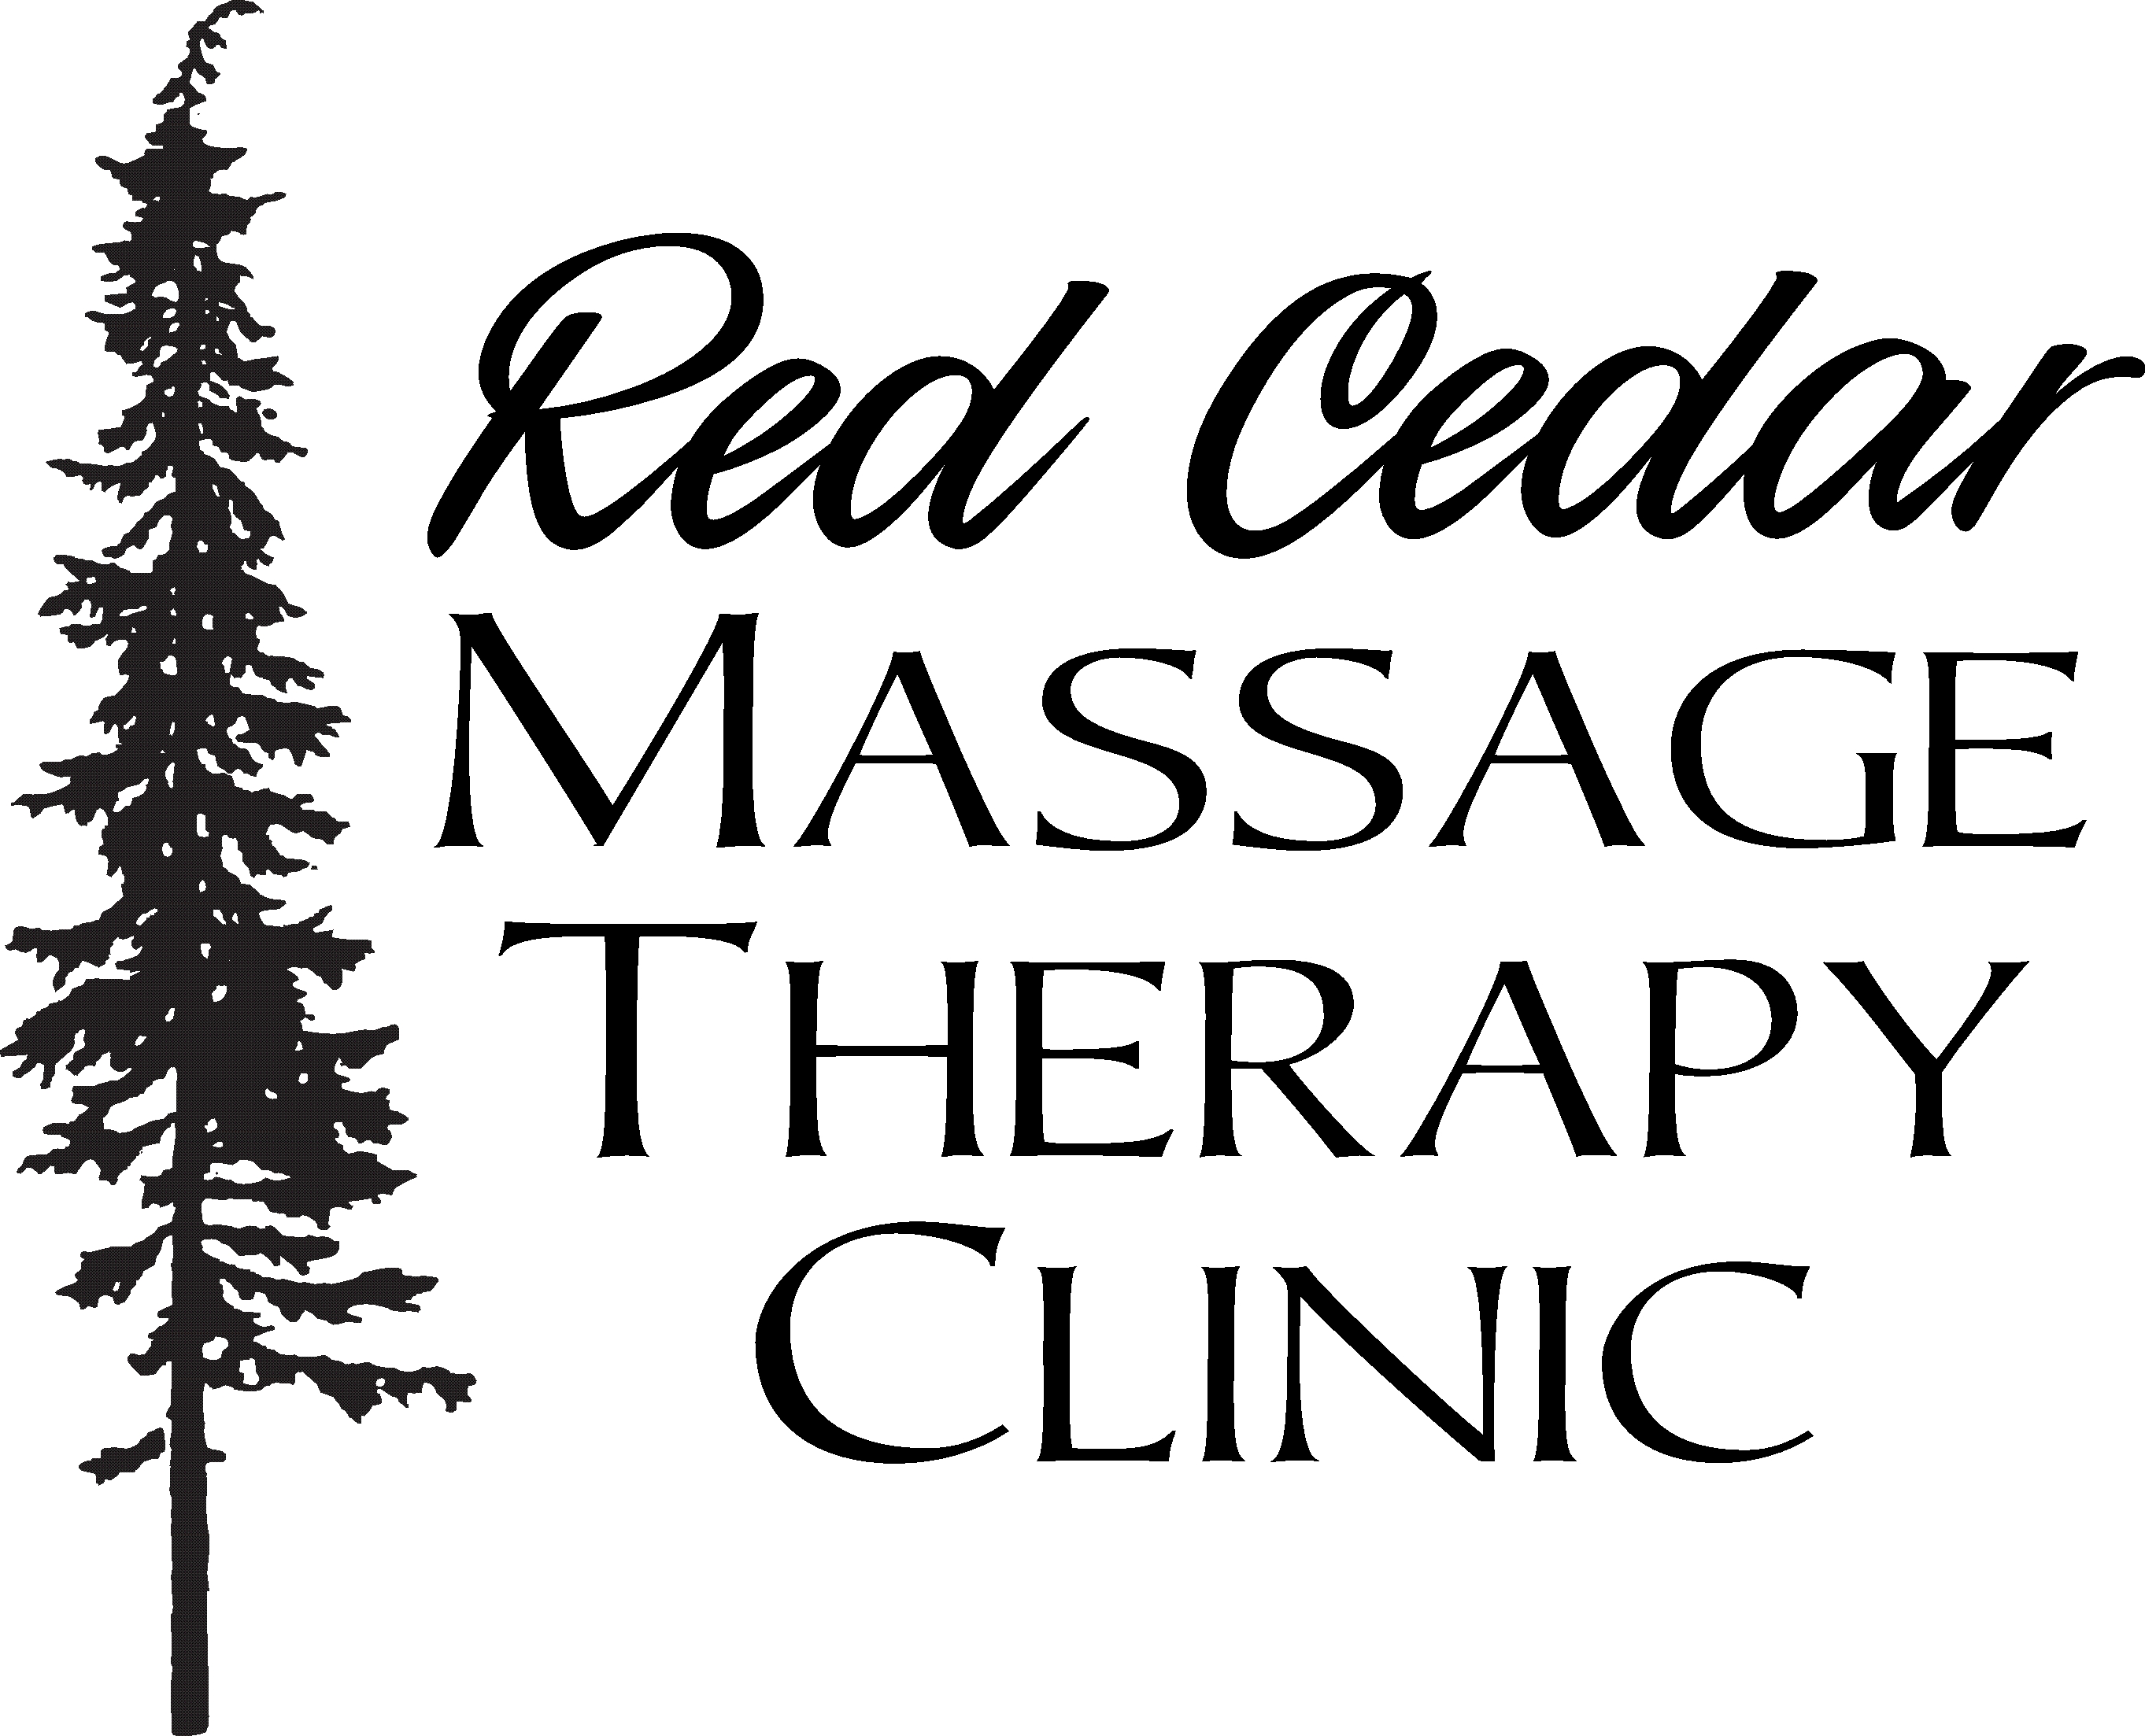 Red Cedar Massage Therapy Clinic